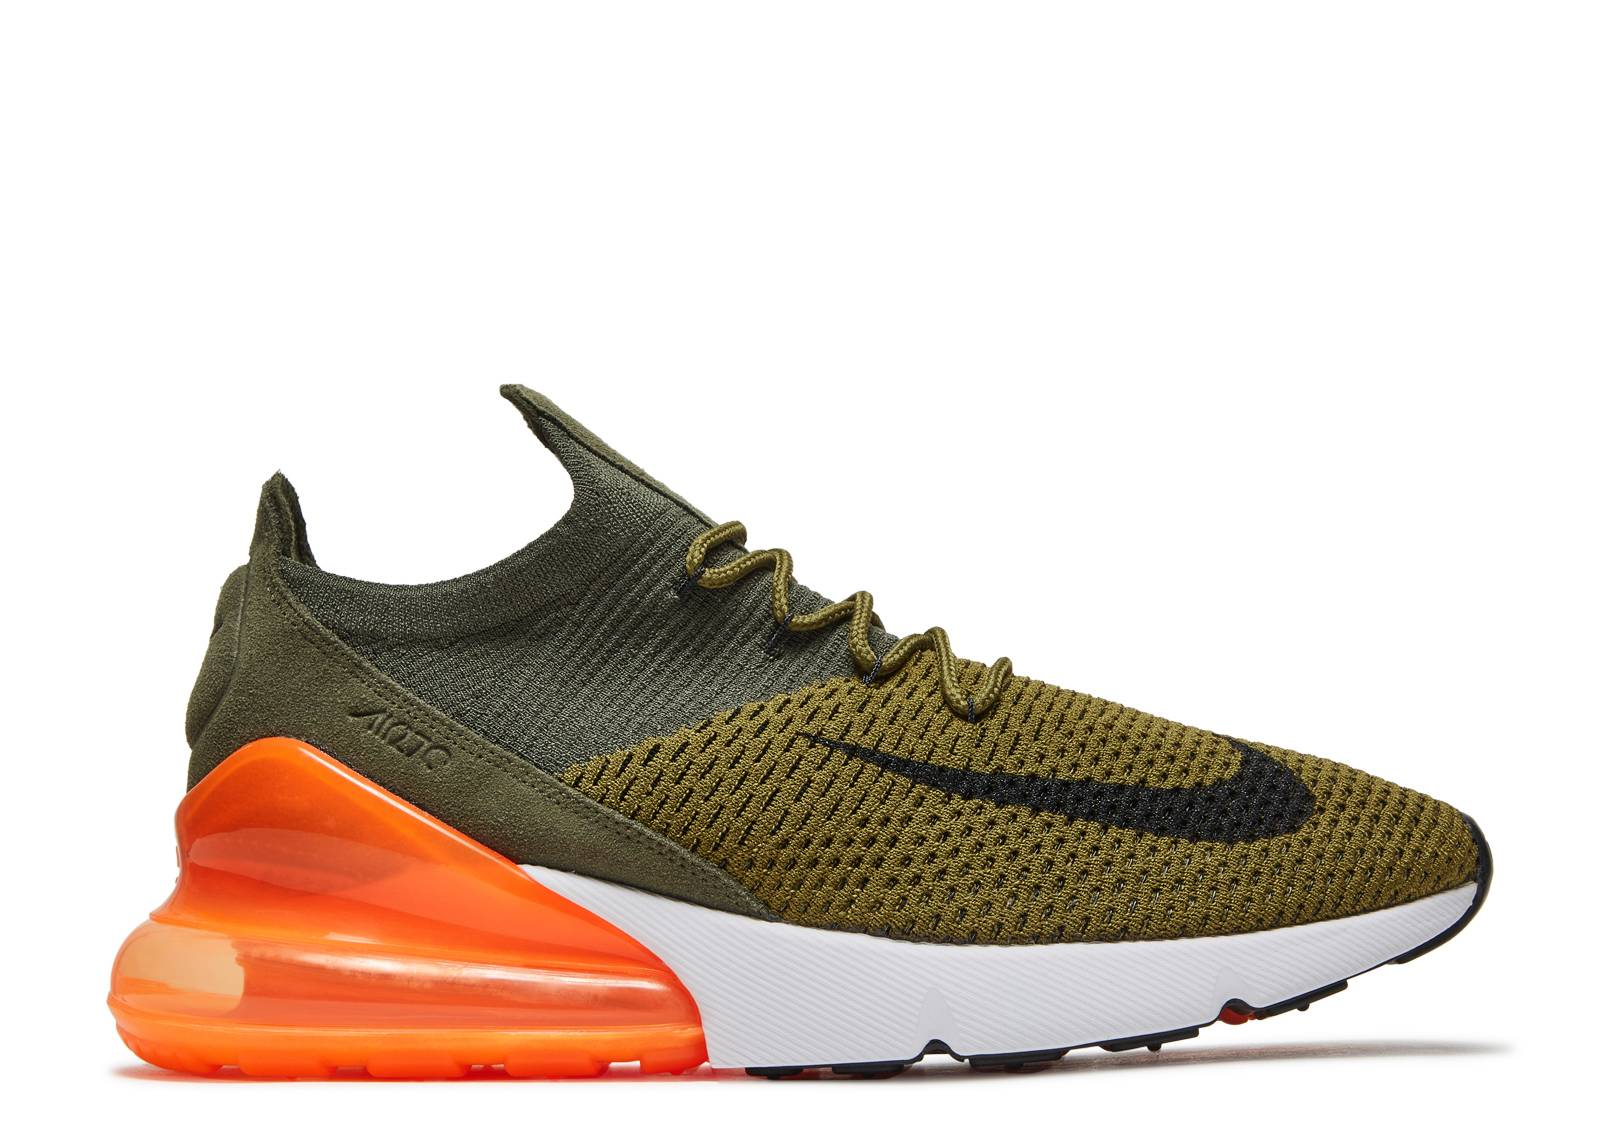 new style 484db 6286a nike. Air Max 270 Flyknit